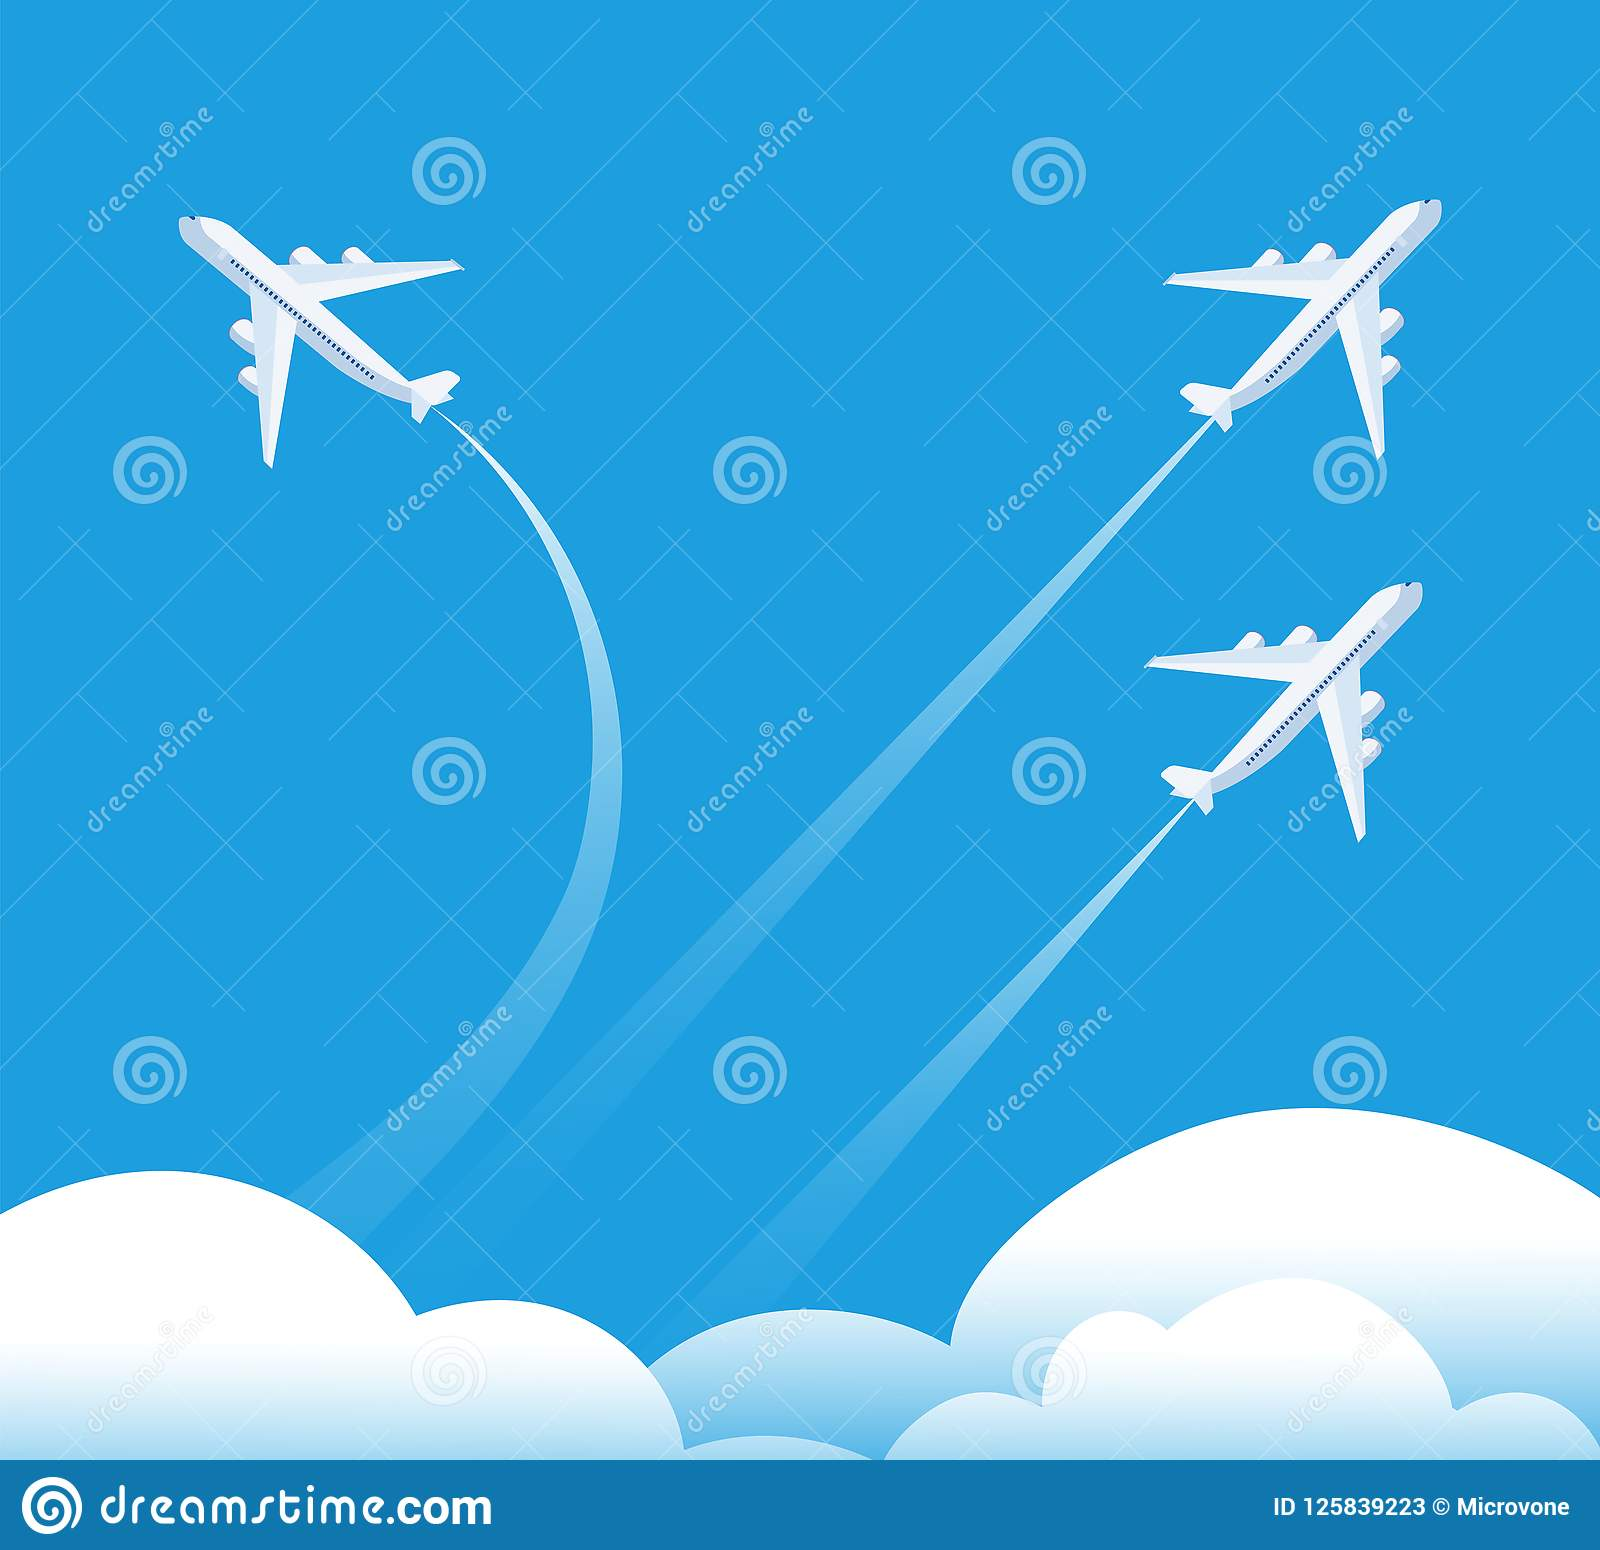 Changing direction concept. Airplane flying in different direction. New trend, unique idea and innovation way business